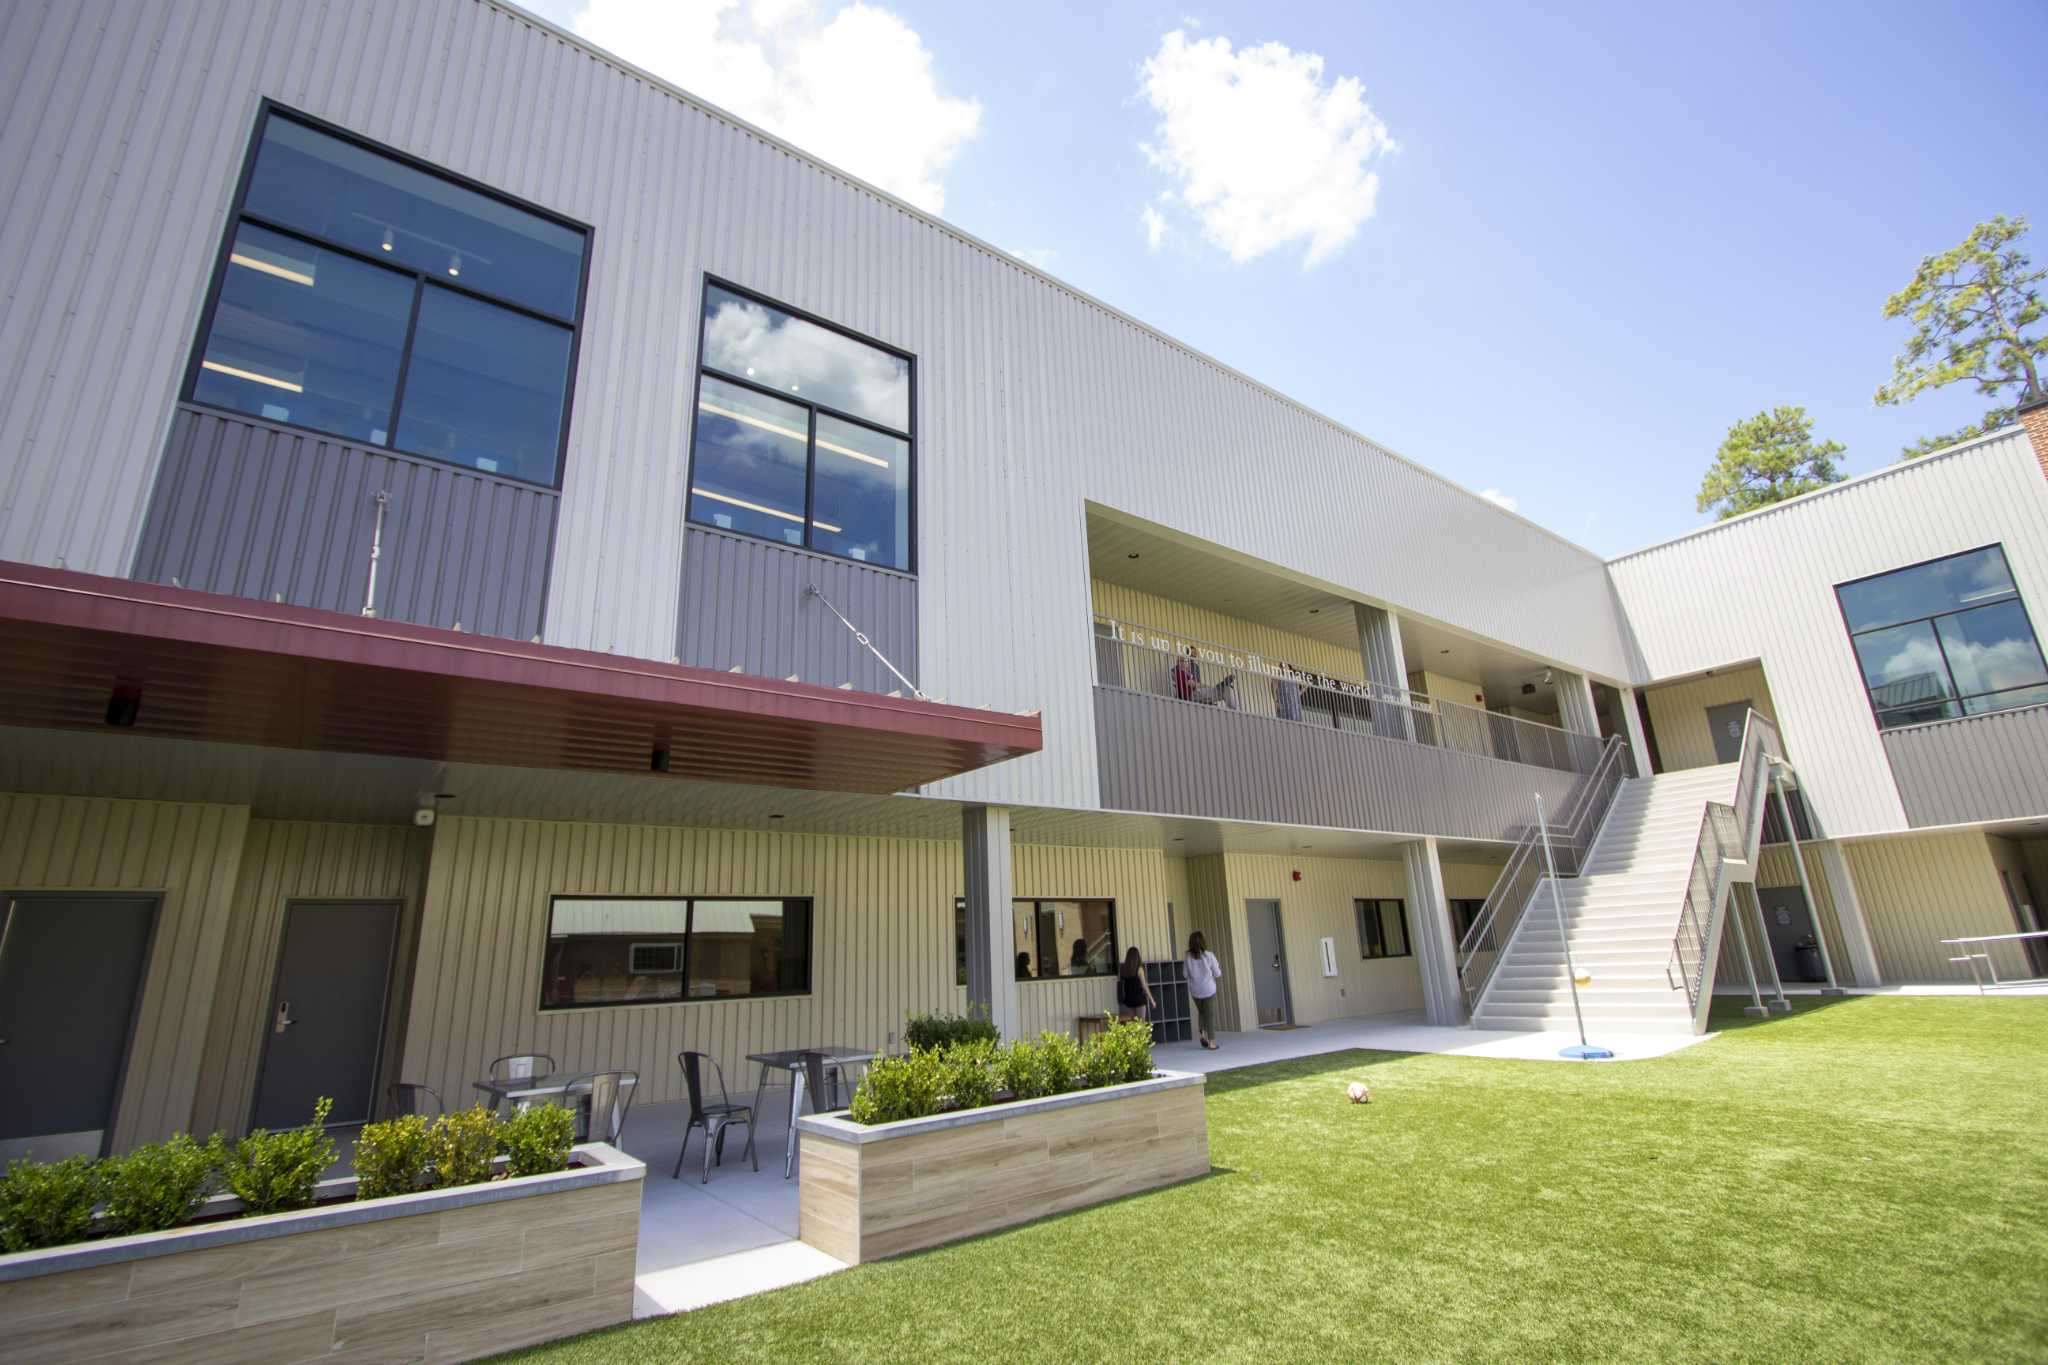 Esprit International Montessori school in The Woodlands celebrates 20th year with new building